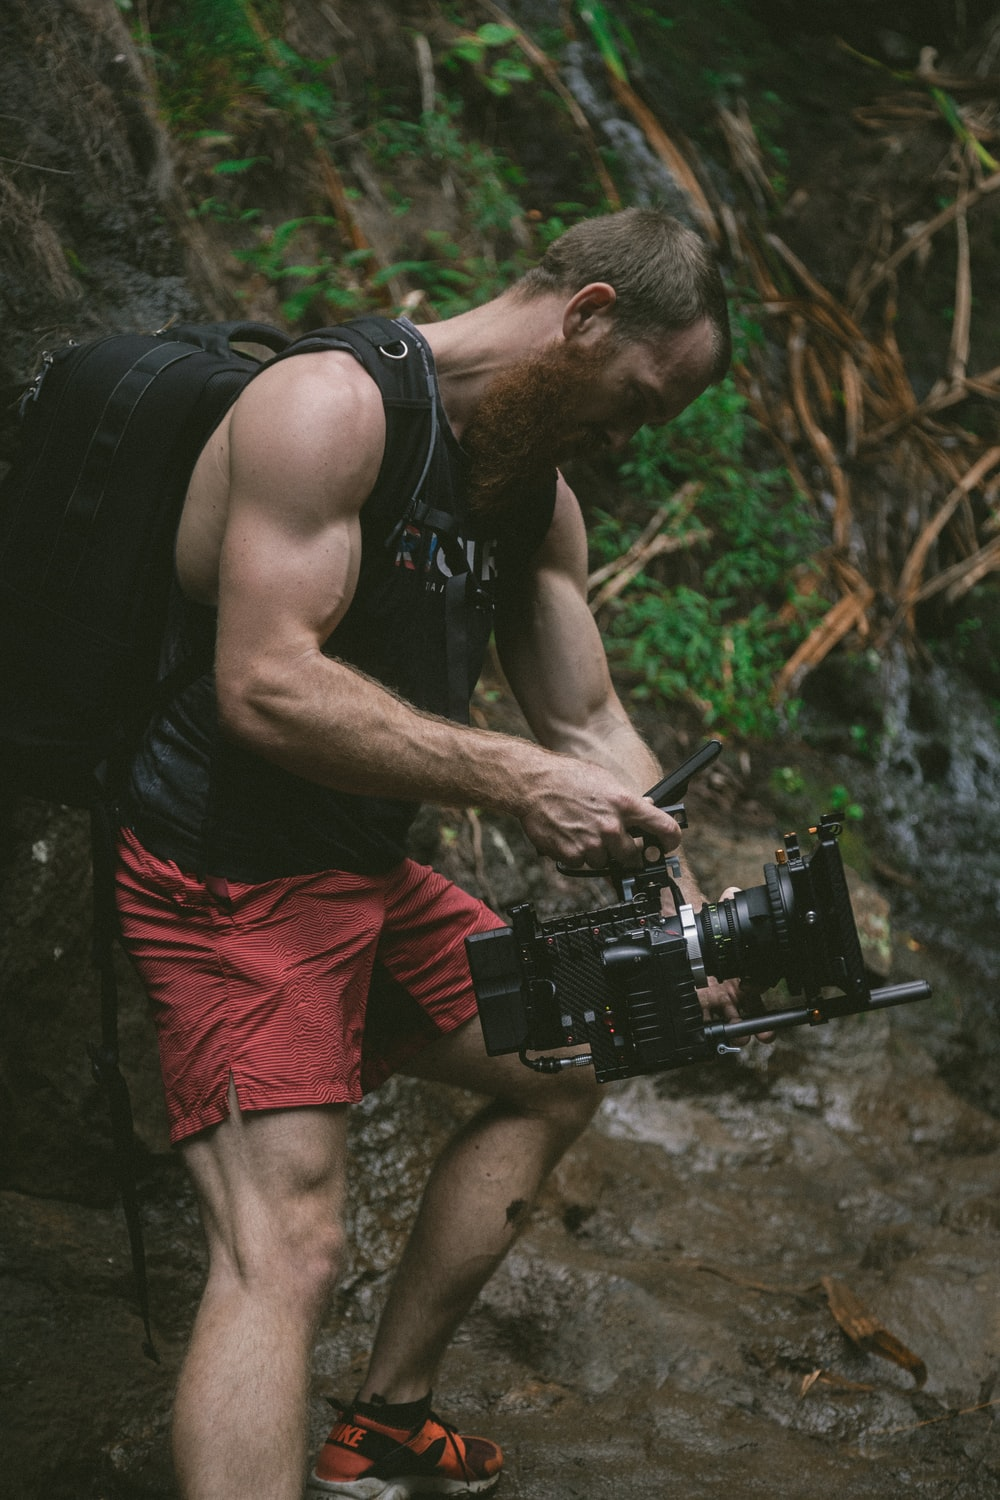 man holding black camera and backpack